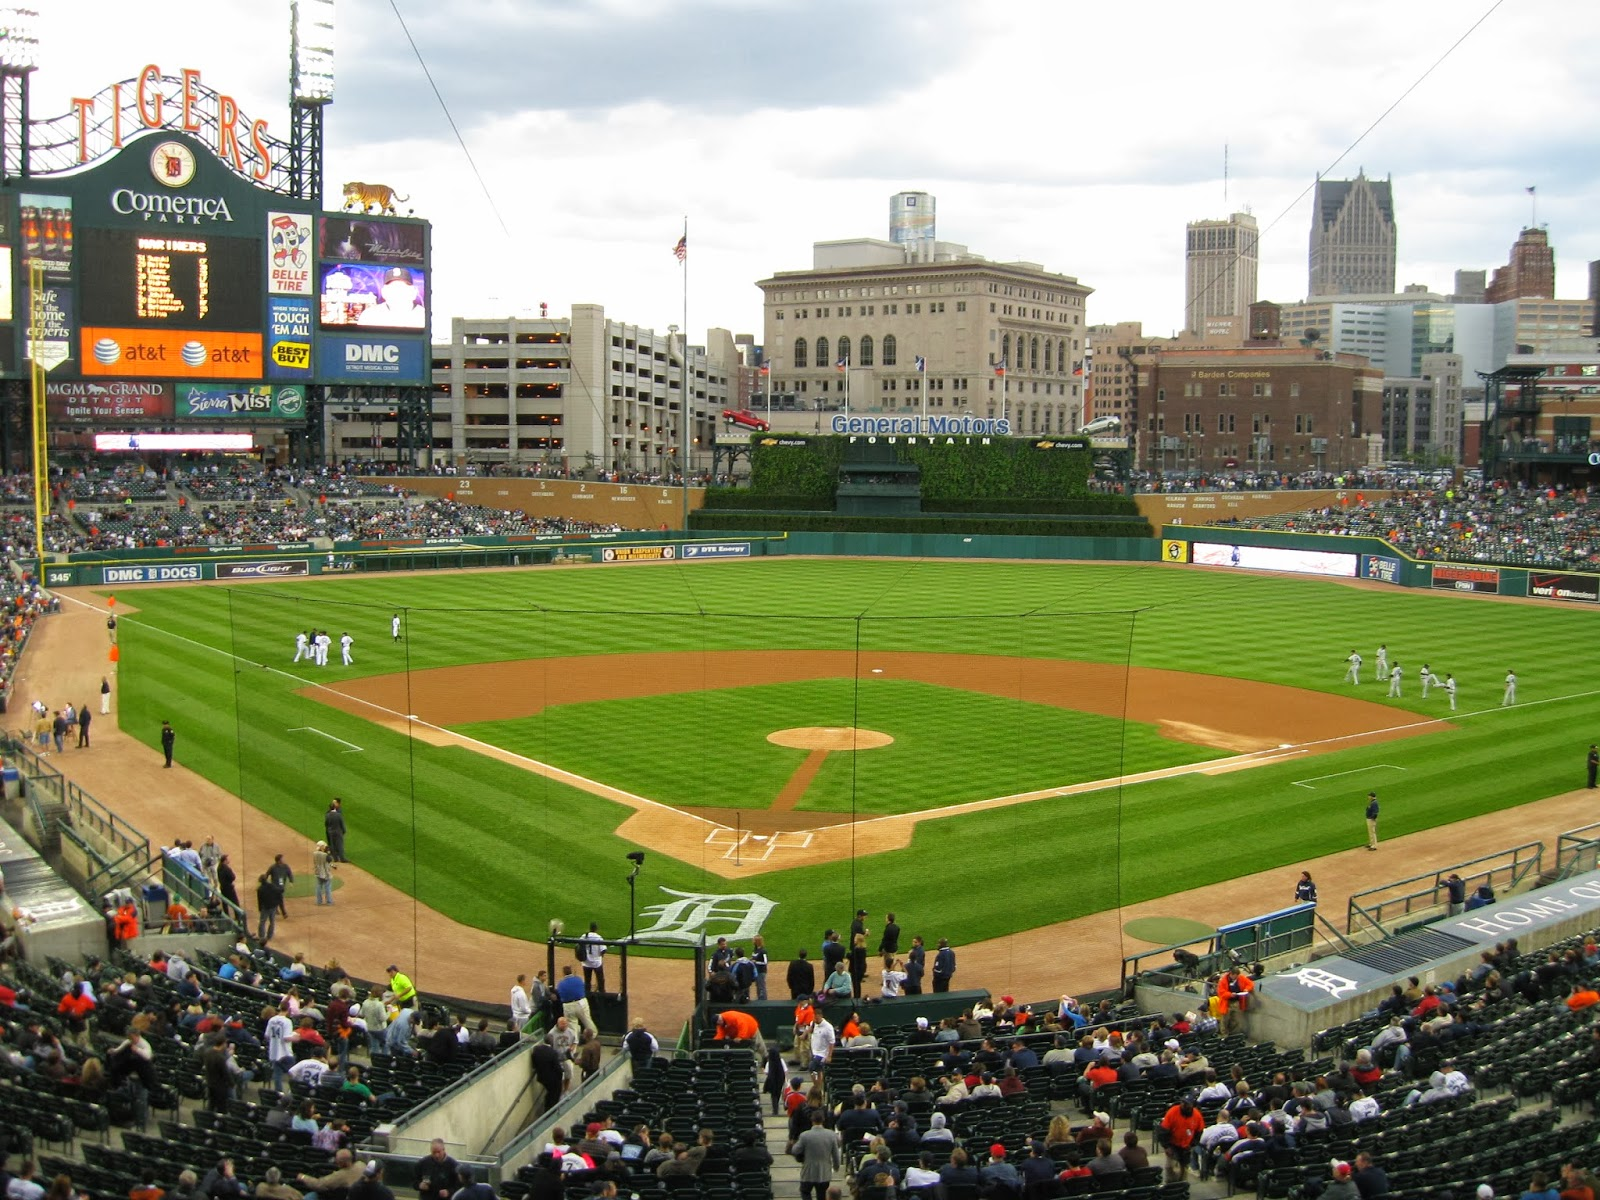 Comerica Park Luxury Suites | Luxury Suite Rentals